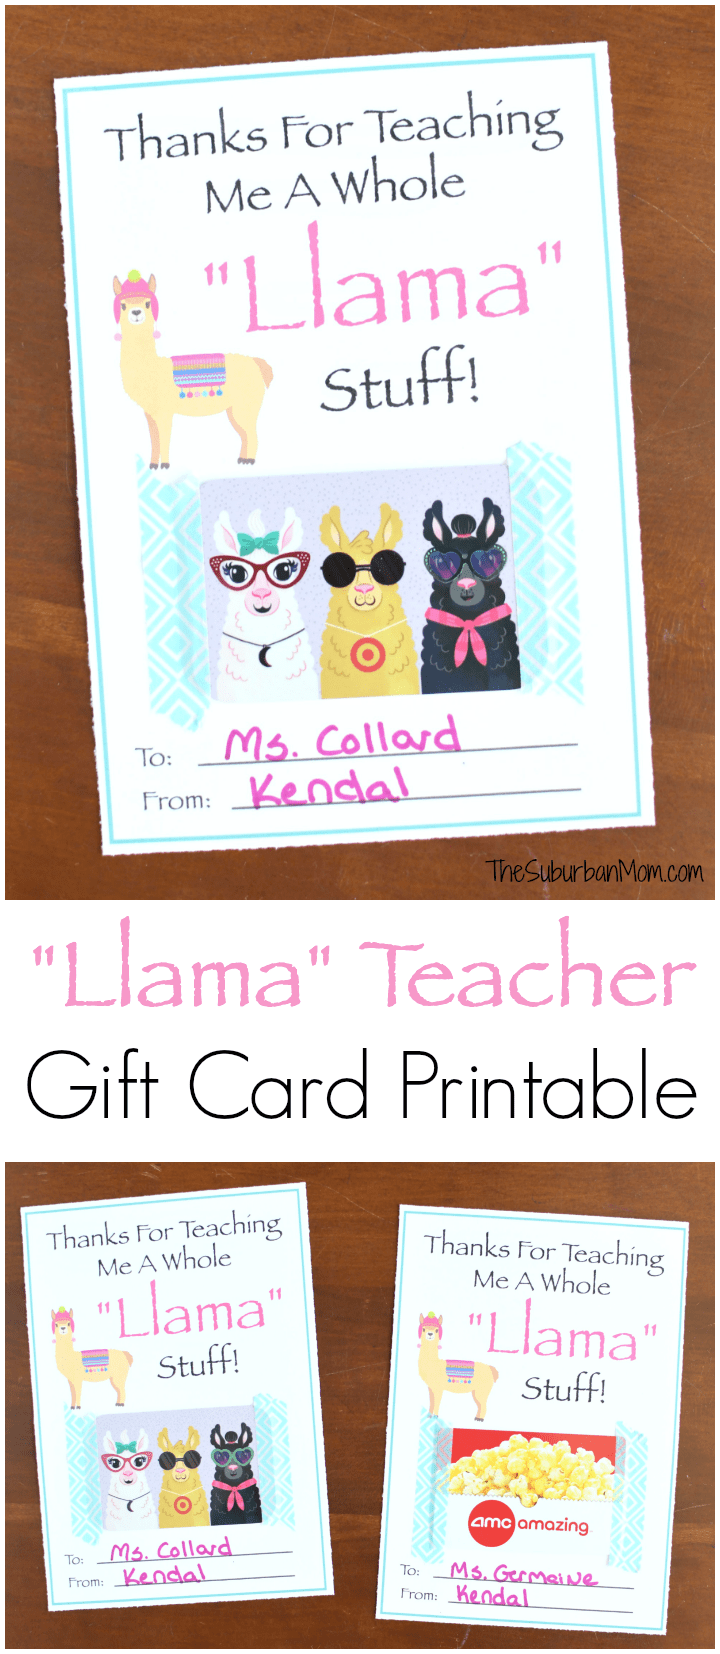 graphic about Printable Survival Cards referred to as Free of charge Printables - TheSuburbanMom